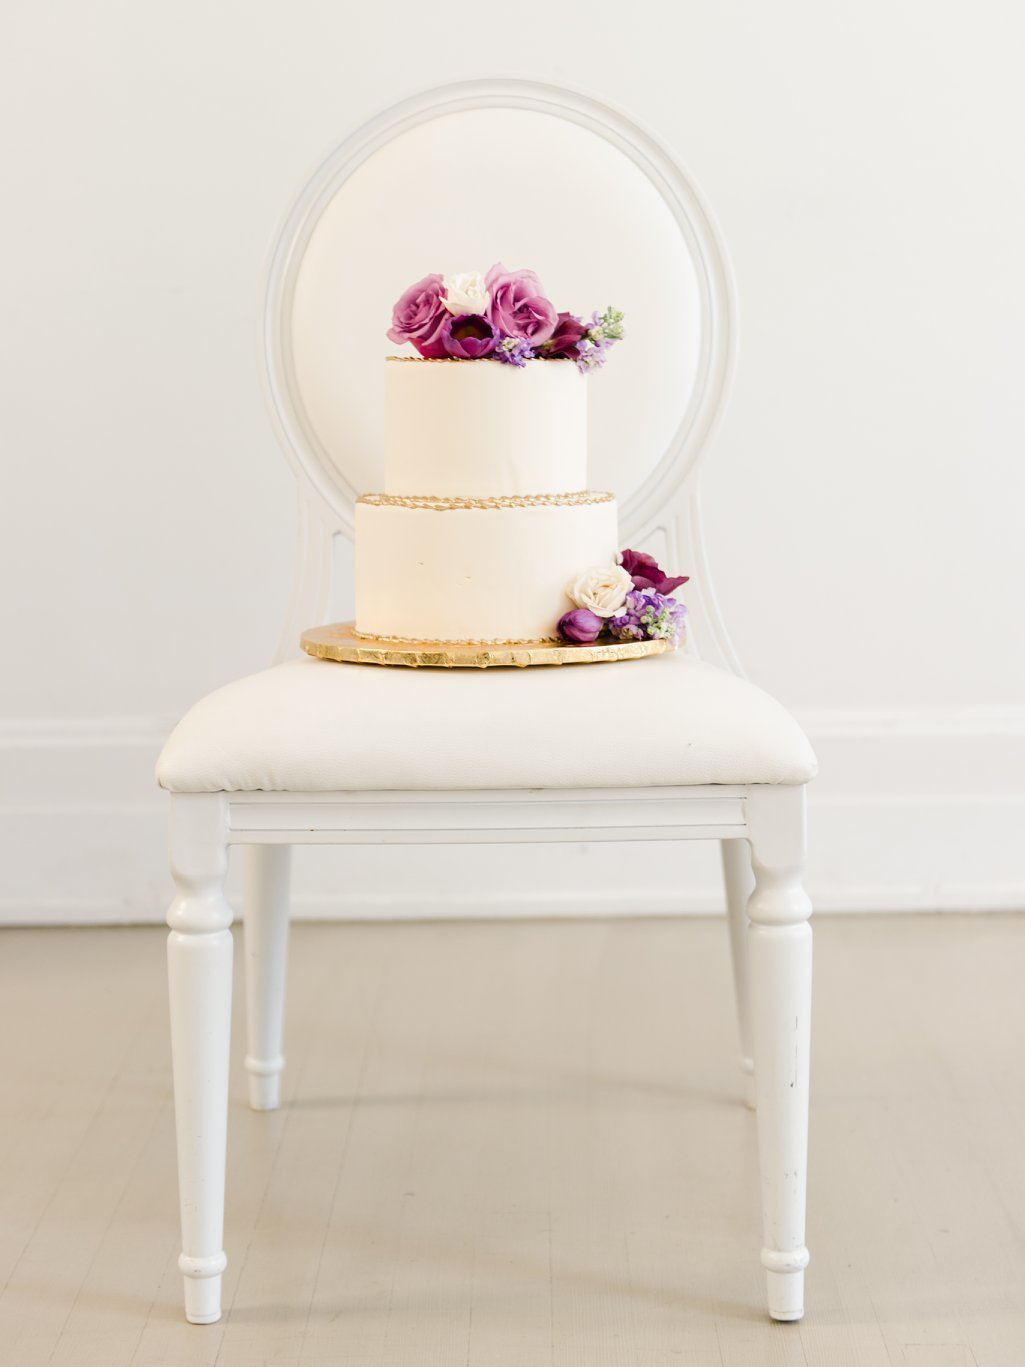 Modern Take on a Classic Wedding Cake